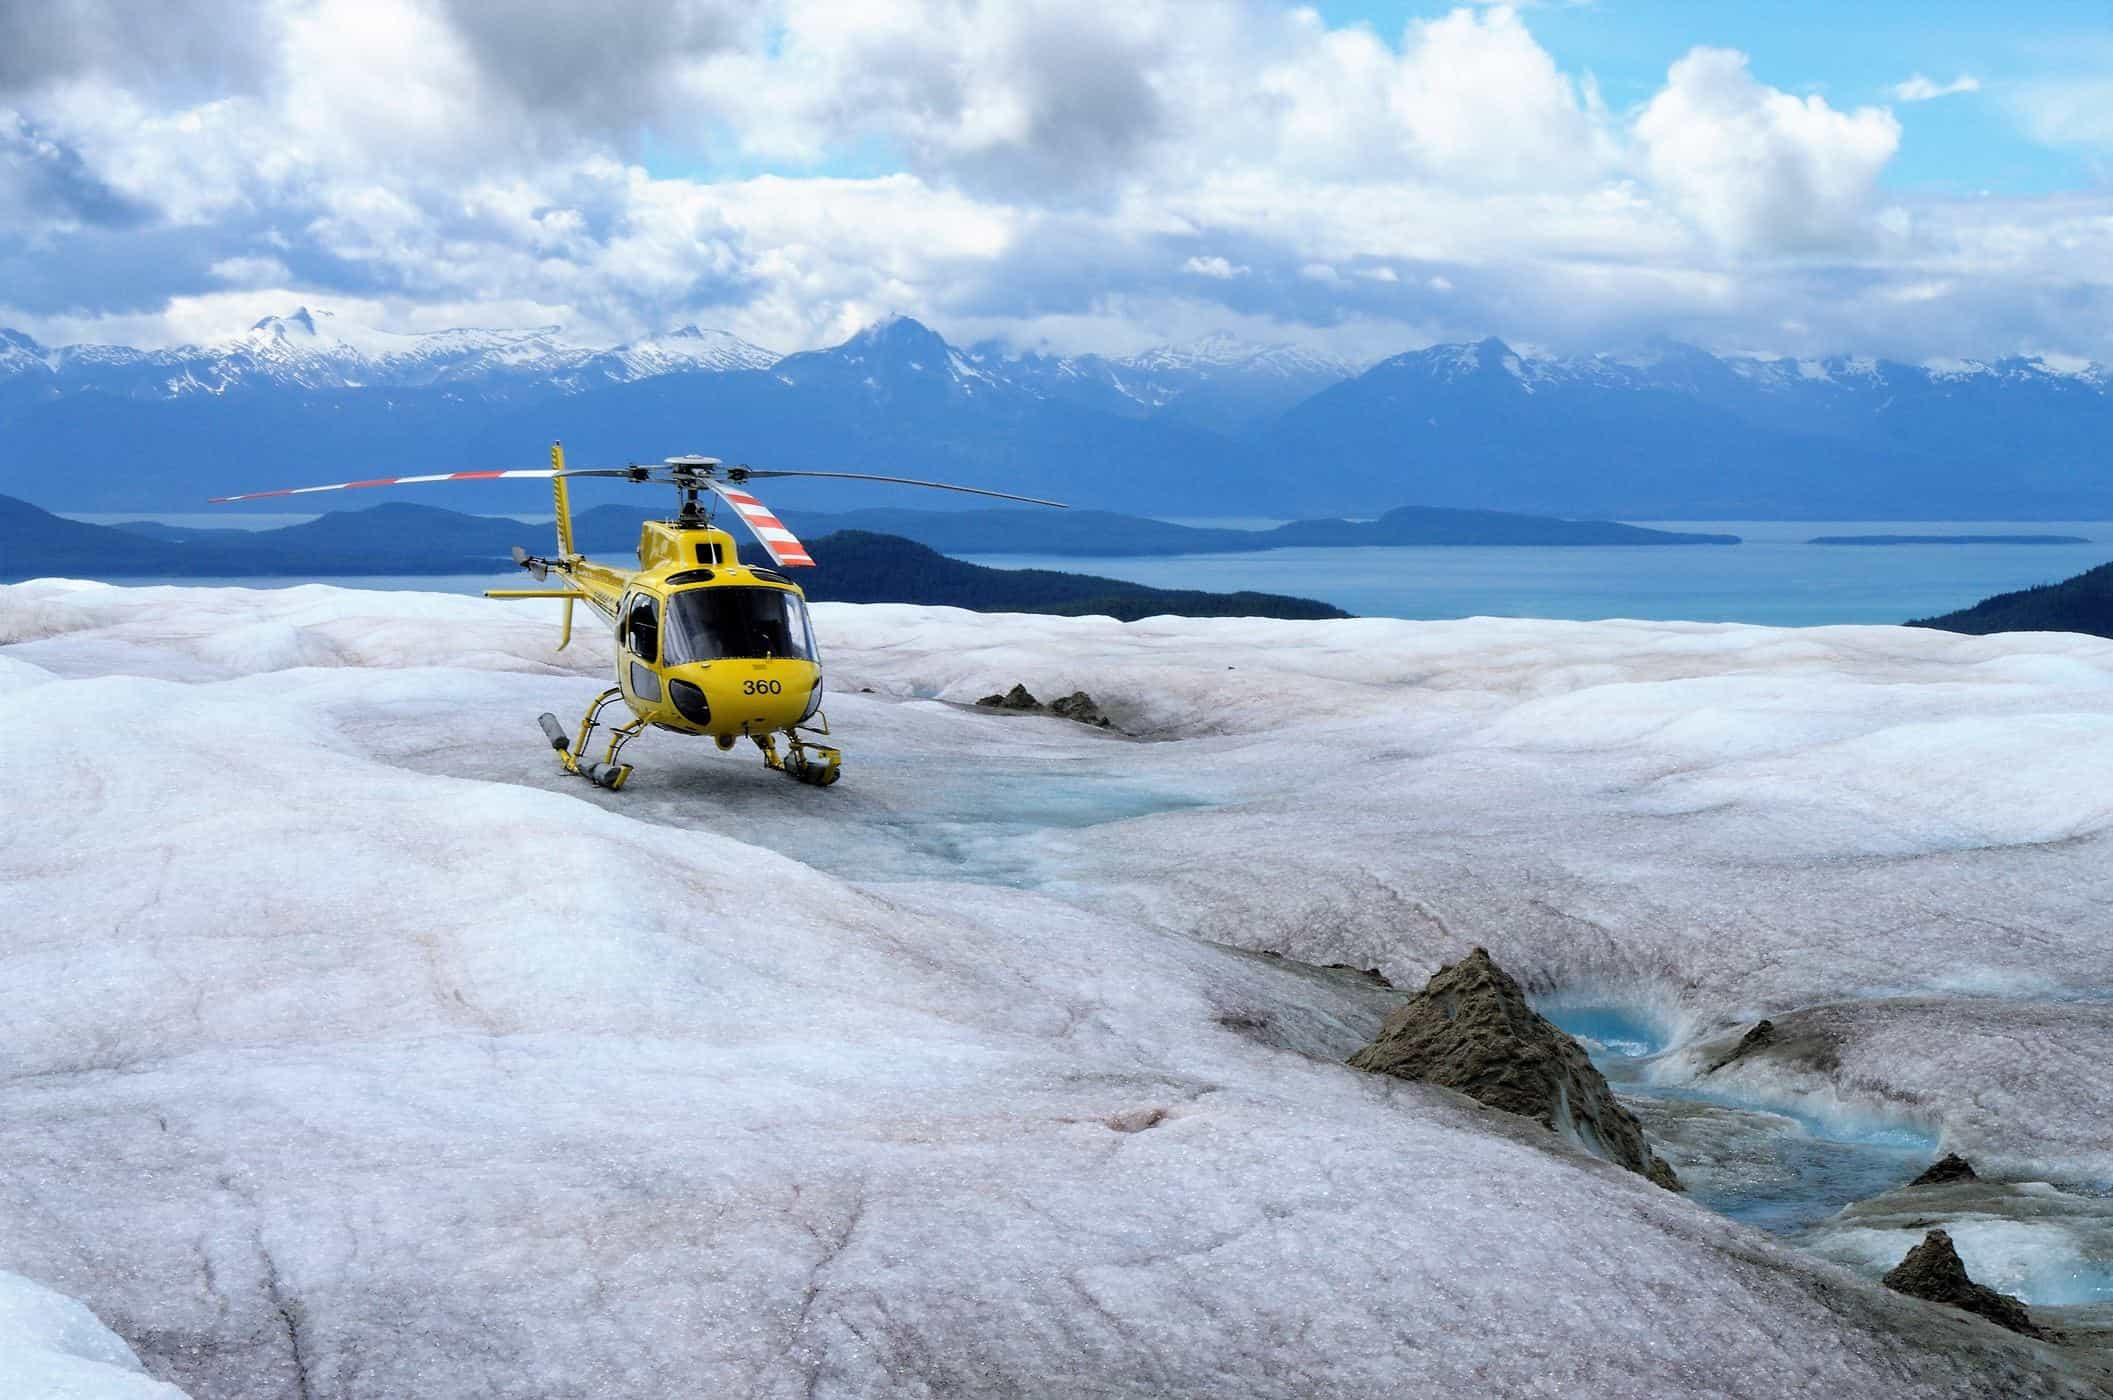 Helicopter in the mountains.